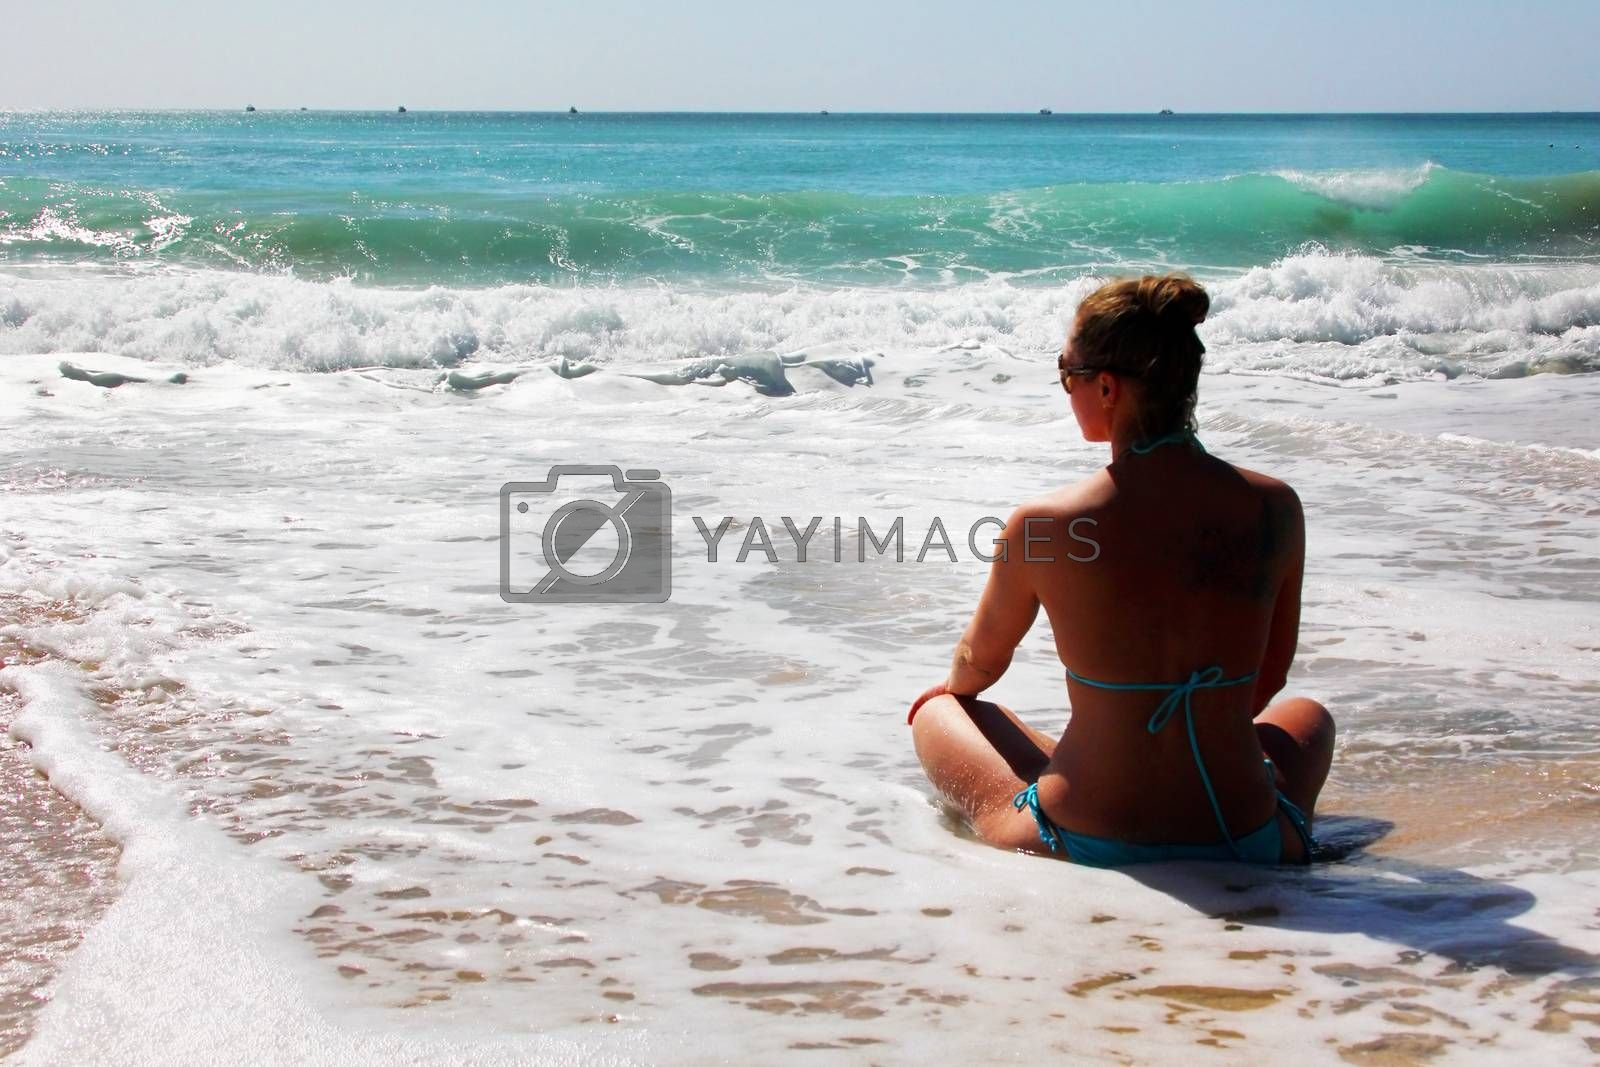 The girl is meditating on the ocean shore. Bali